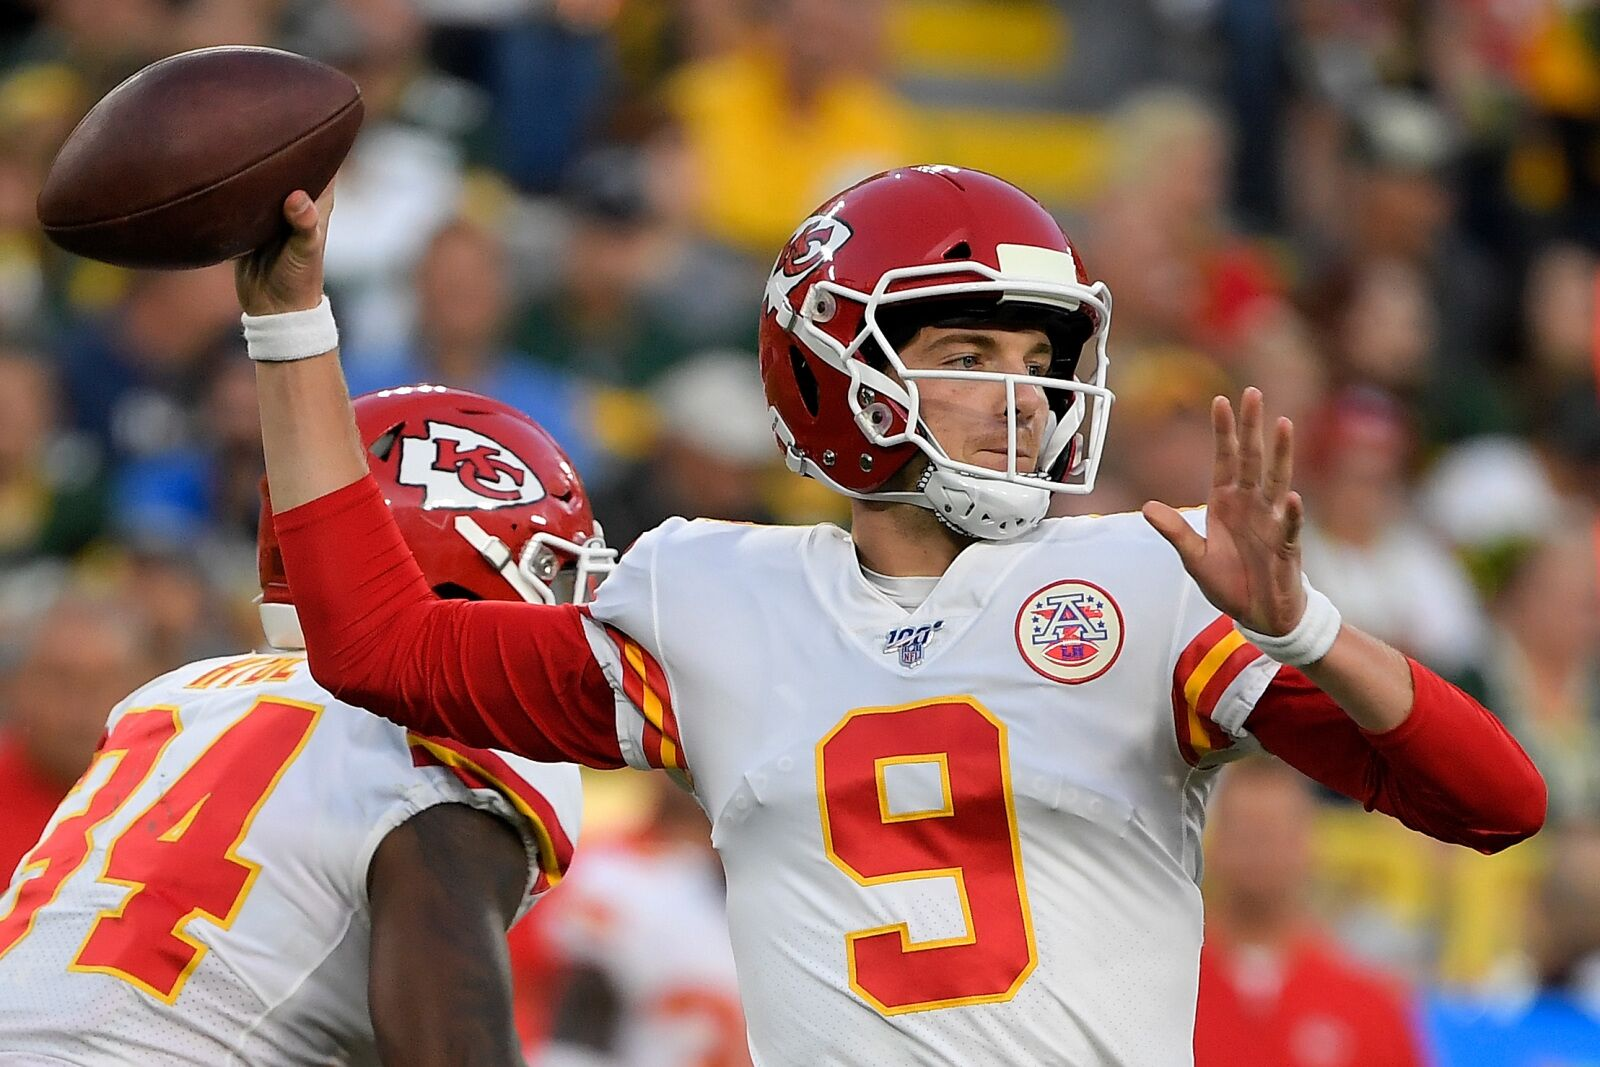 Kyle Shurmur could find himself on the Chiefs active roster soon